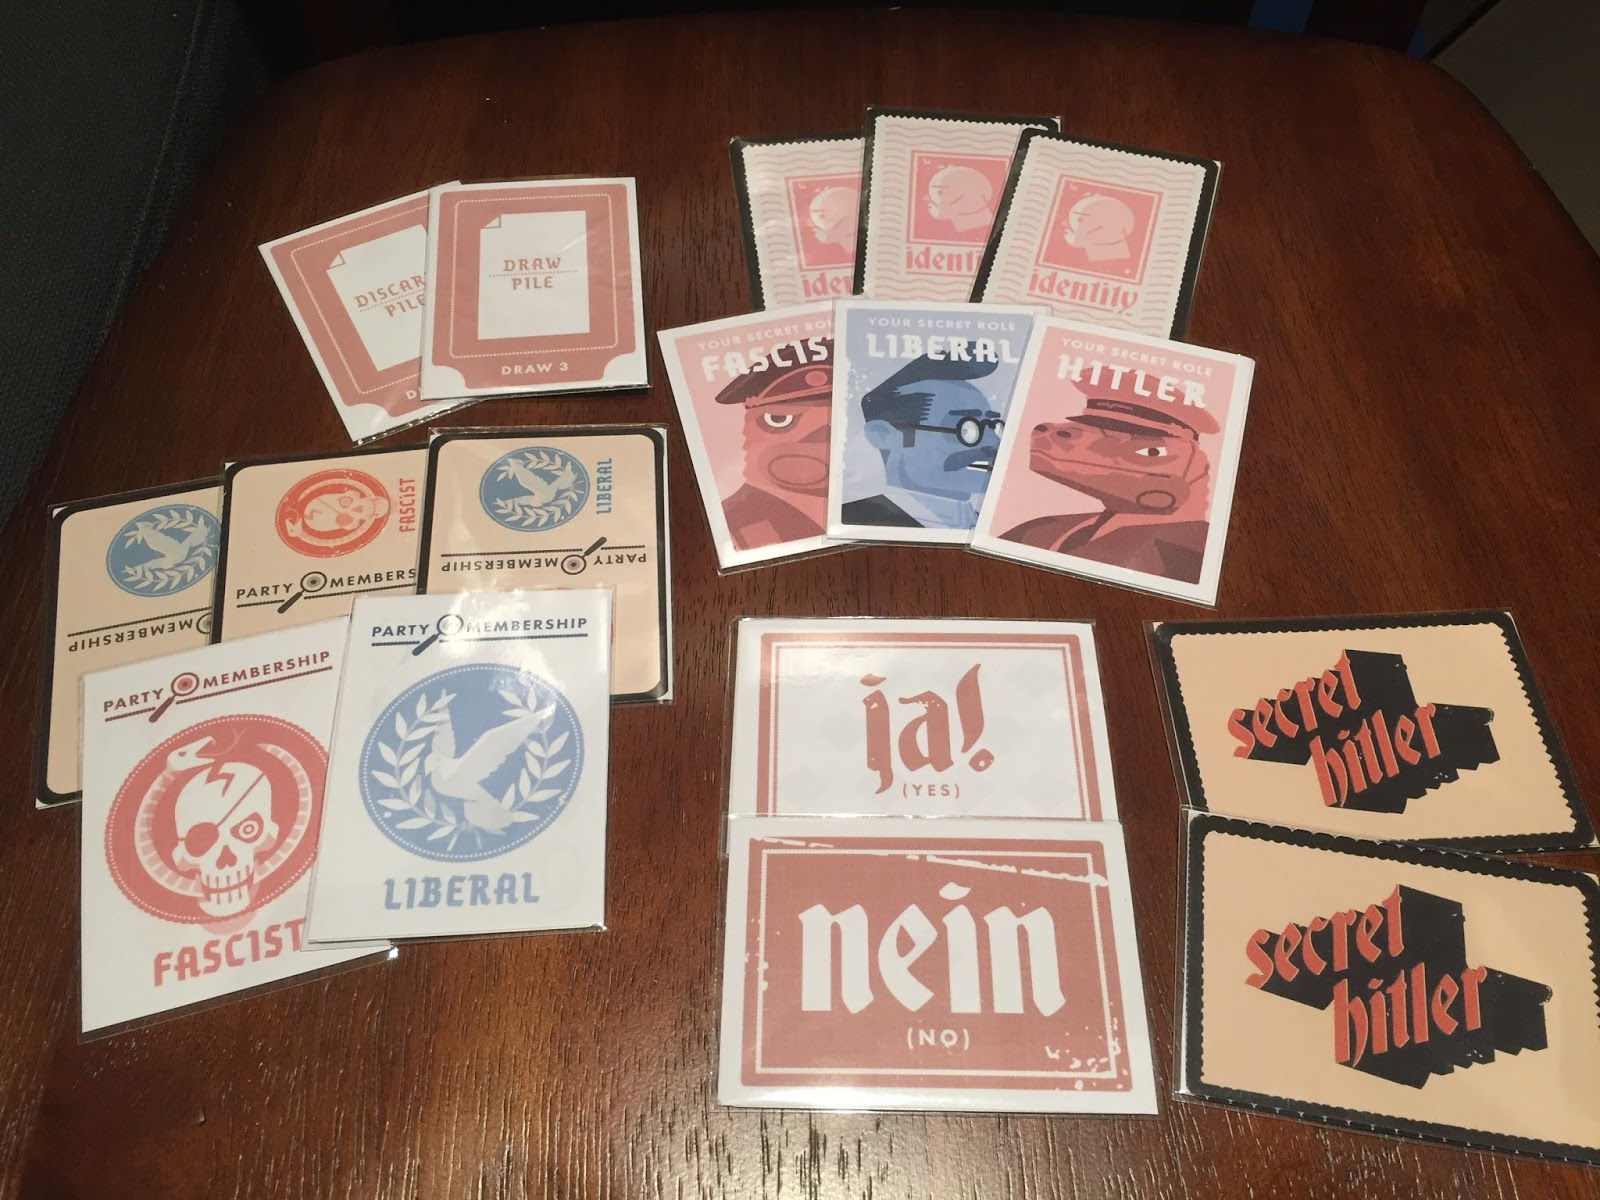 photo about Secret Hitler Printable identify Mystery Hitler [Print Perform] - Giochi sul Nostro Tavolo